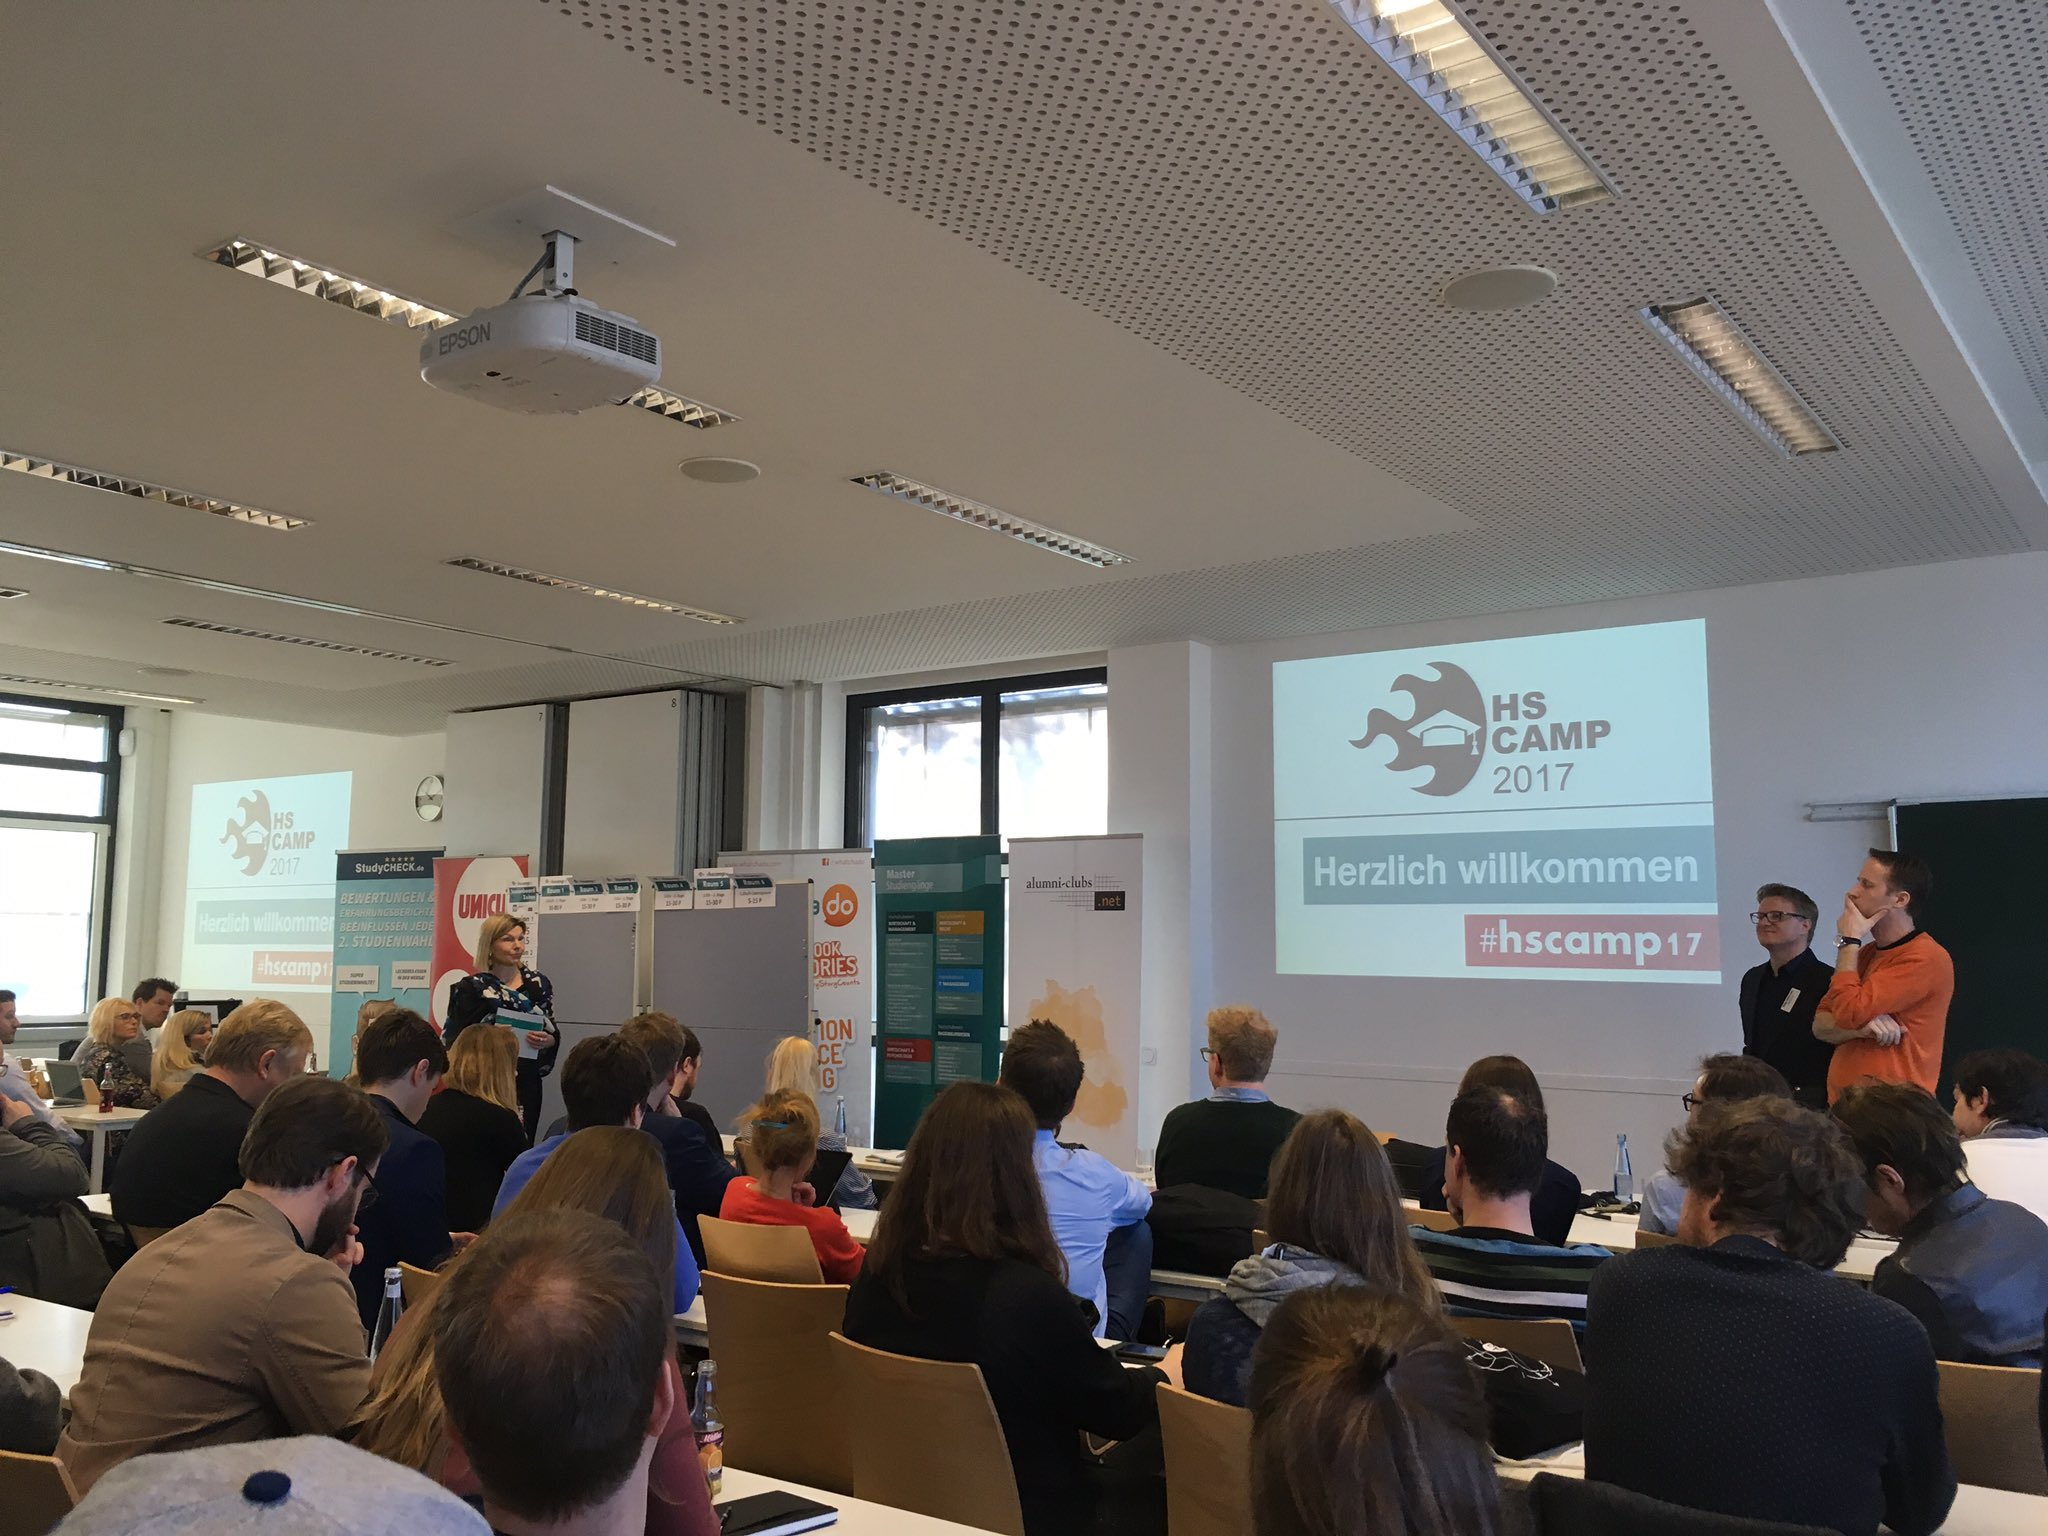 https://t.co/yeJofJBBVv beim #hscamp17 https://t.co/c7pZiLK0C6